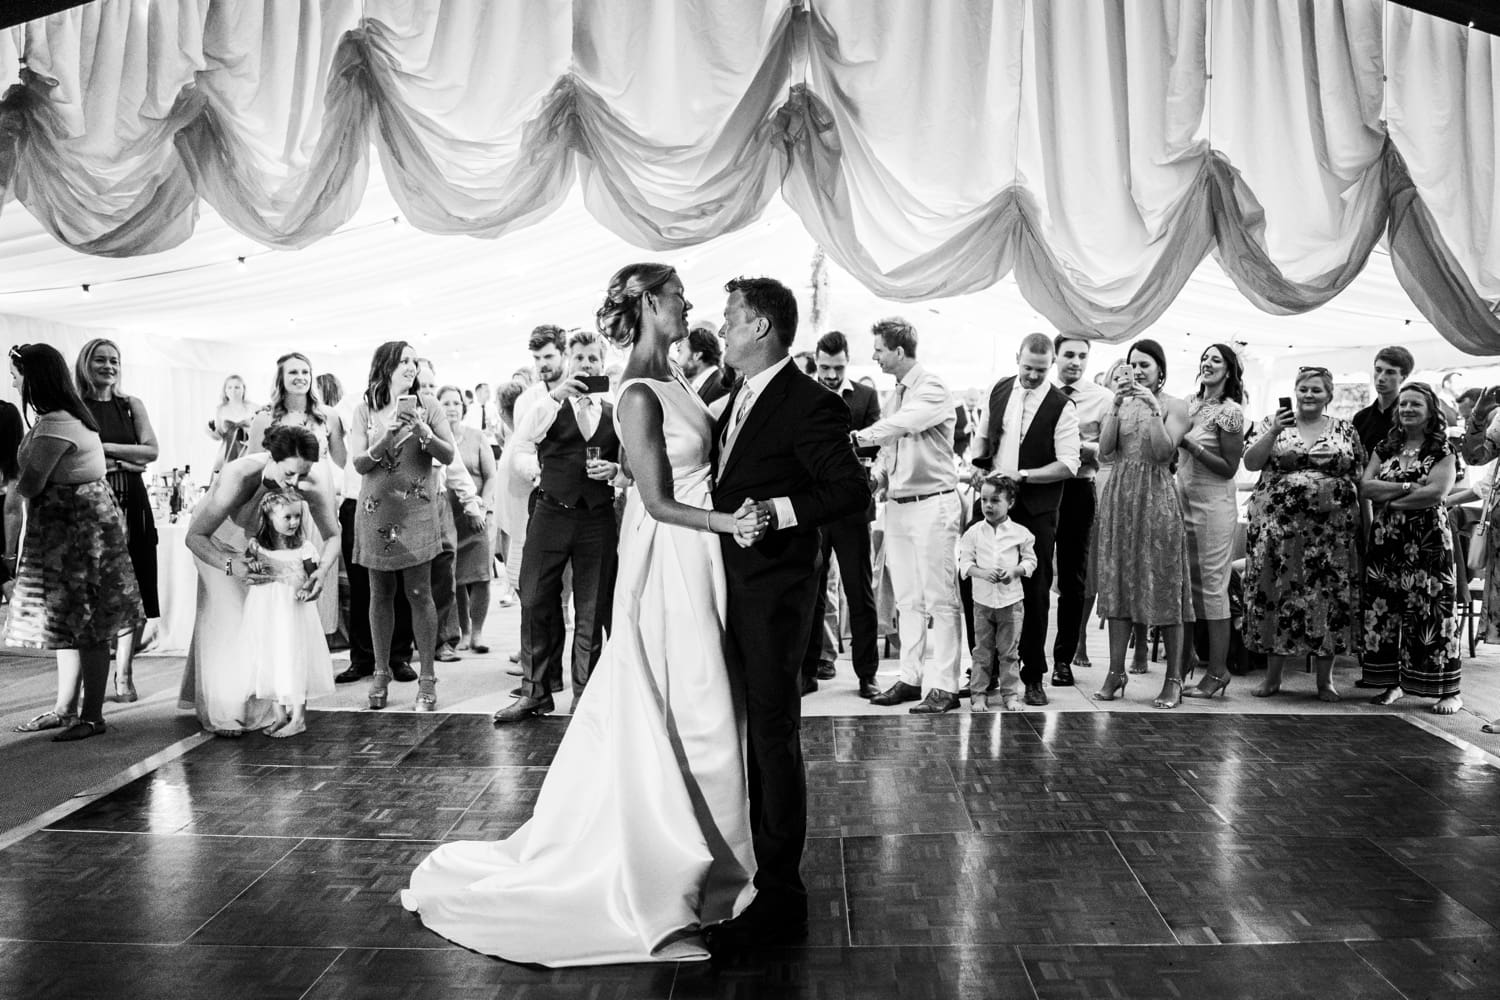 Wedding dancing at the Glanusk Park Estate in South Wales